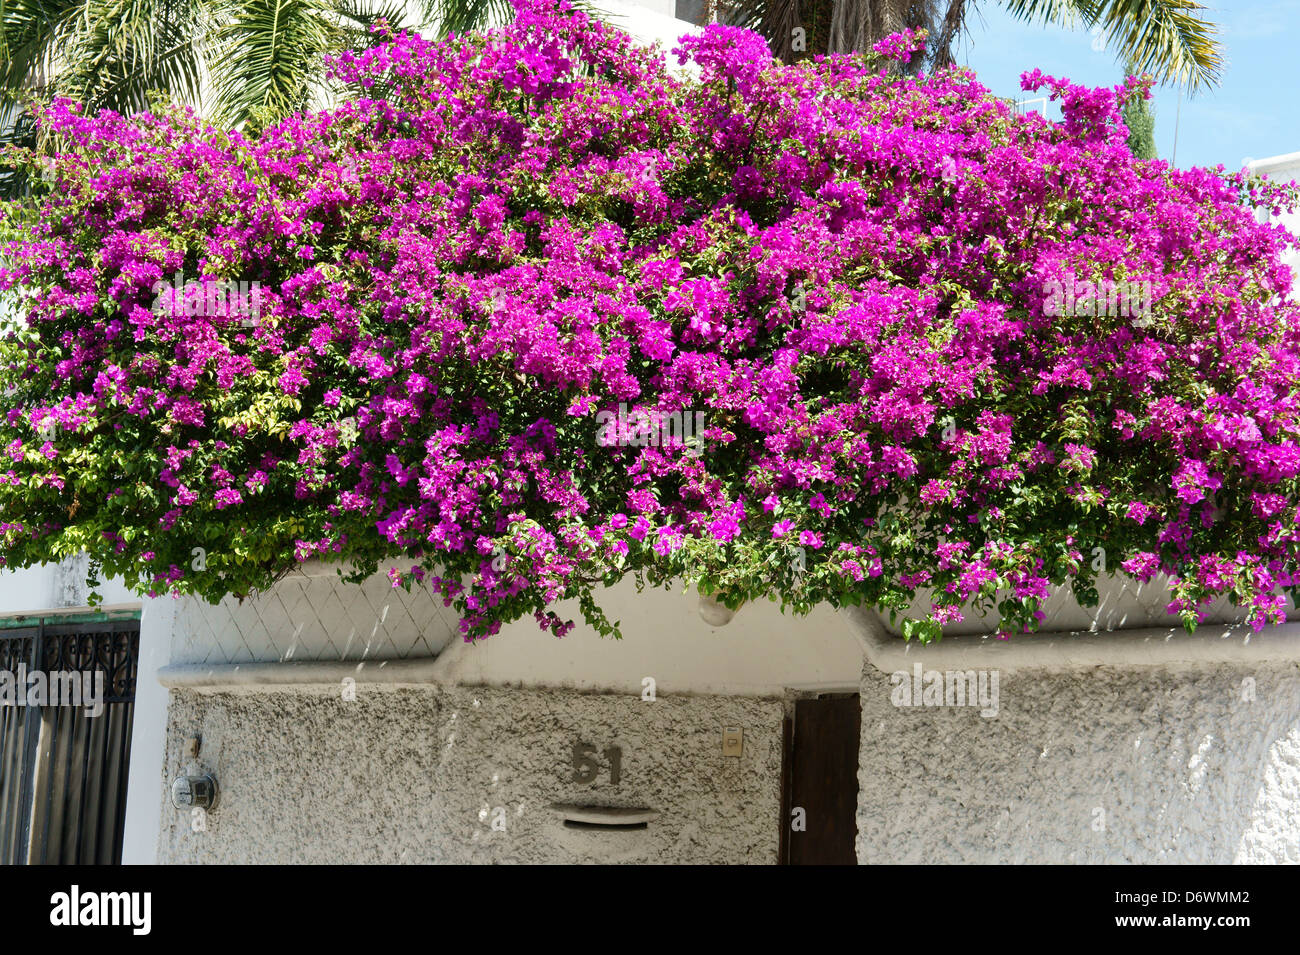 Purple bougainvillea growing on the rooftop of a house in downtown, Cancun, Quintana Roo, Mexico - Stock Image